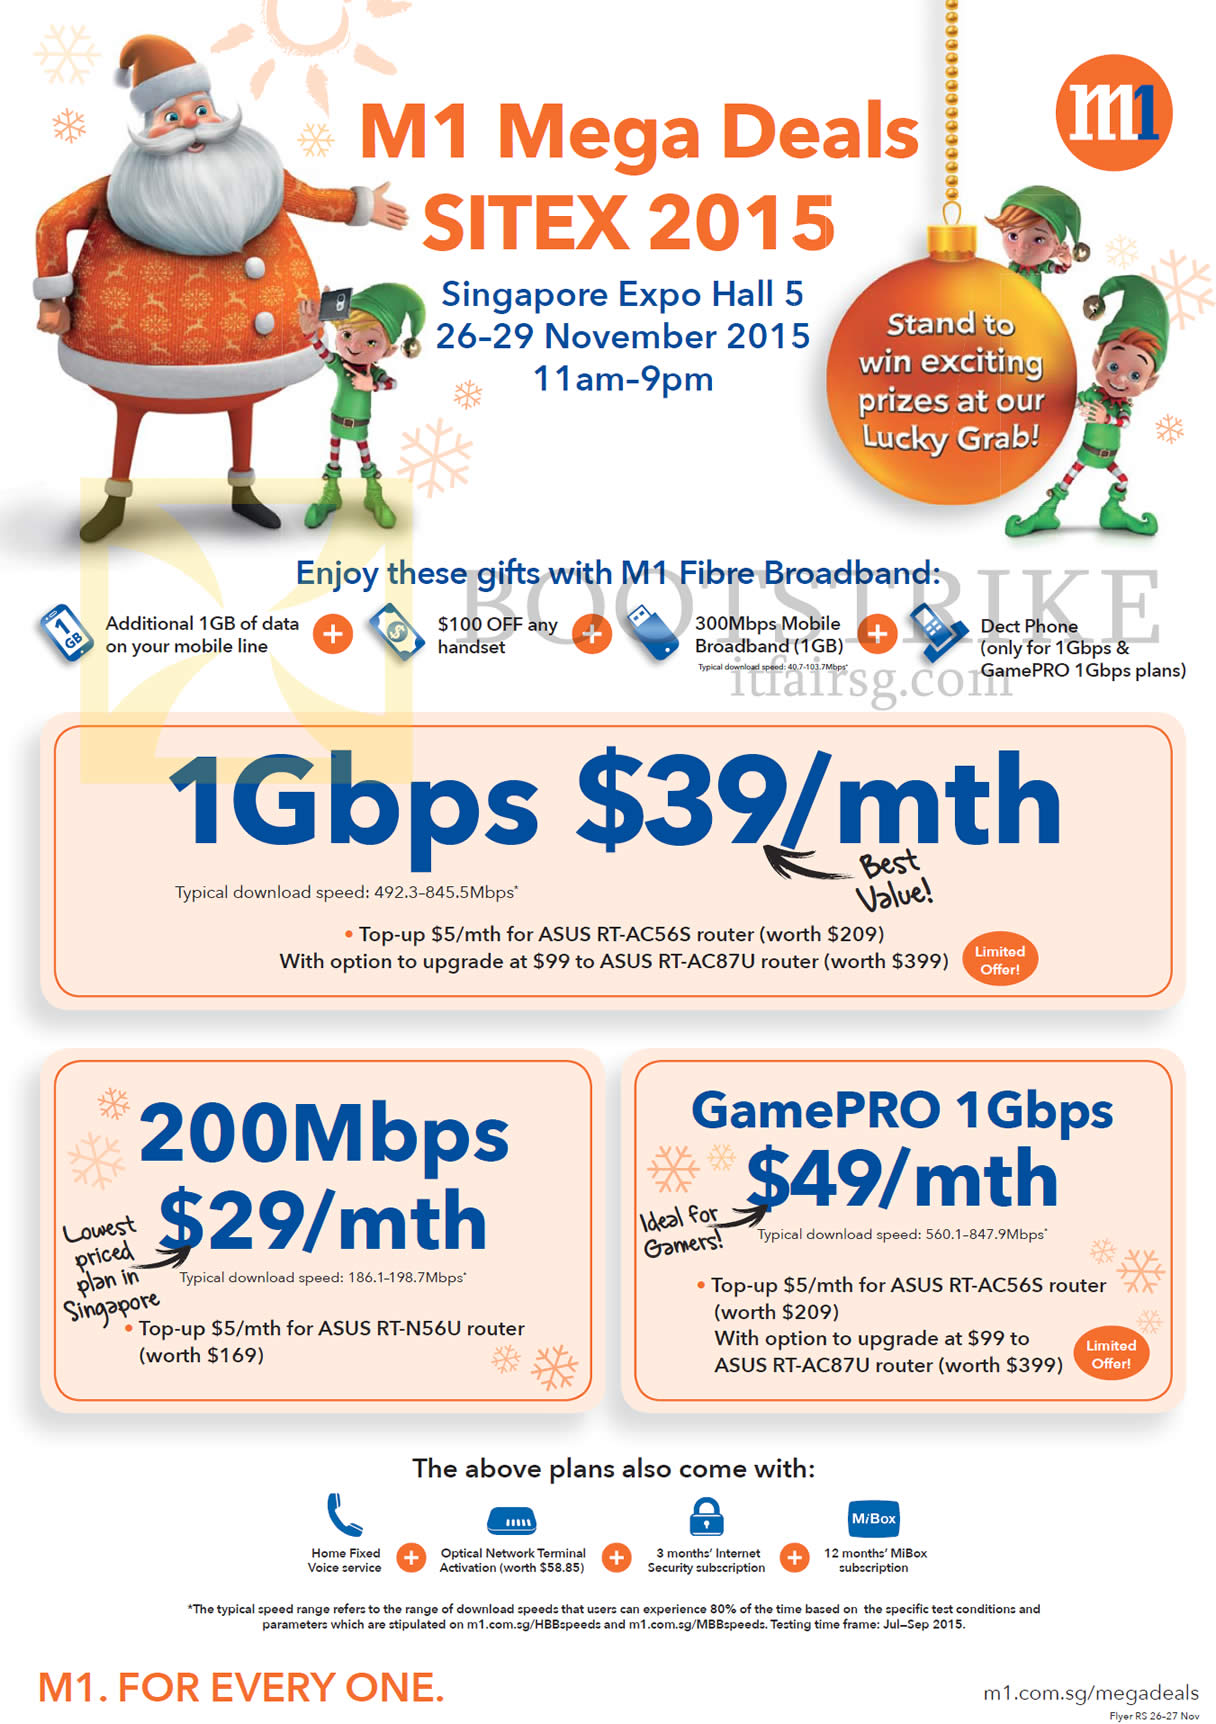 SITEX 2015 price list image brochure of M1 Broadband Fibre 1Gbps 39.00, 200Mbps 29.00, GamePro 1Gbps 49.00